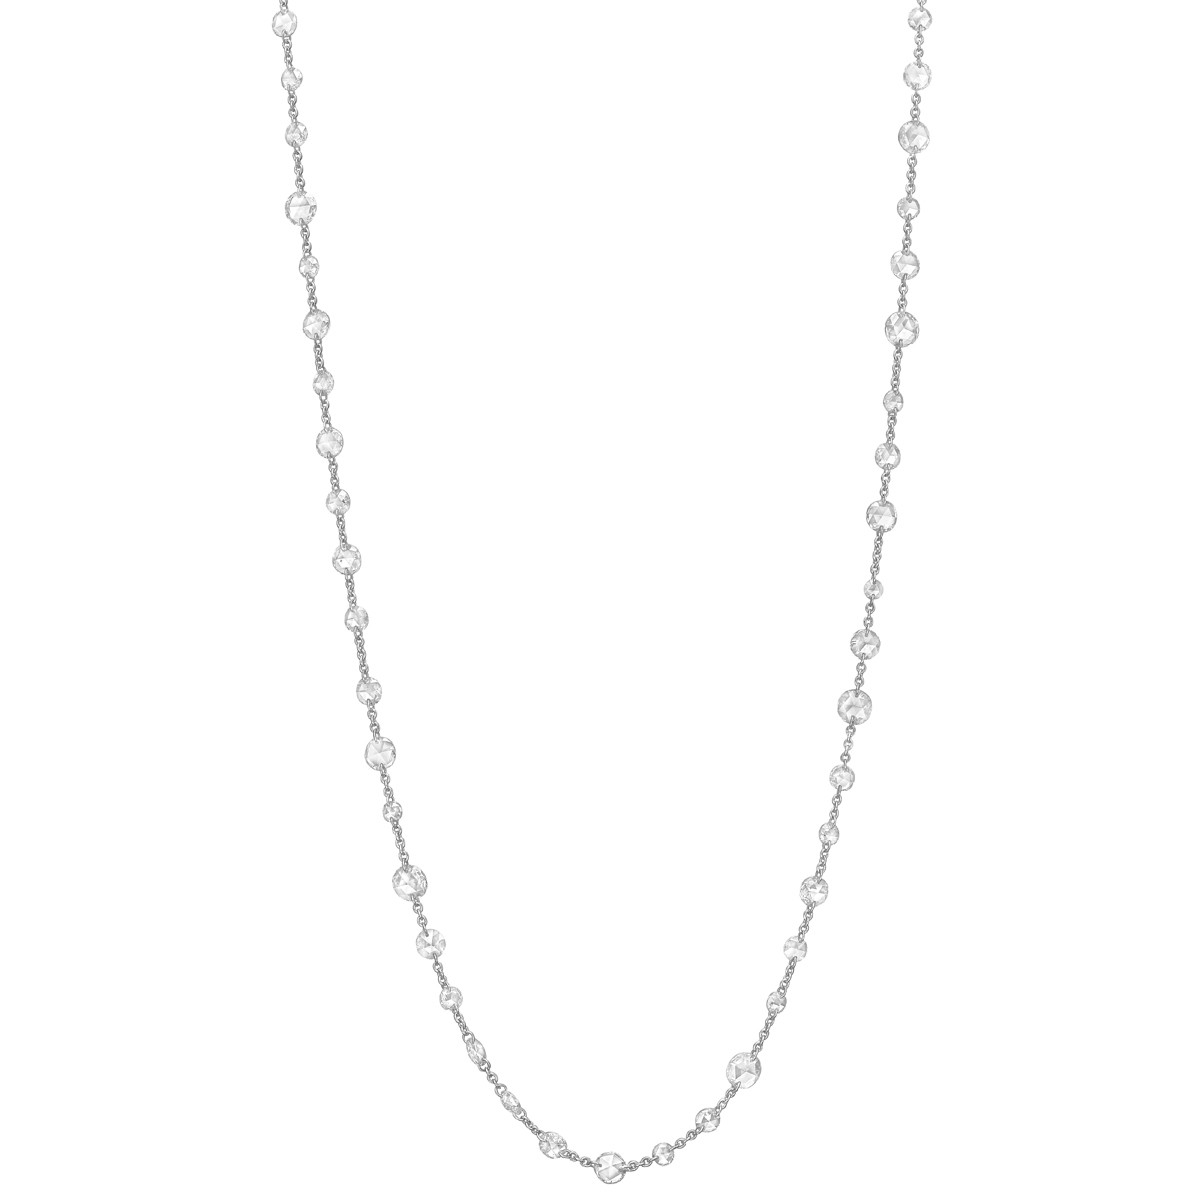 Rose-Cut Diamond Chain Long Necklace (11.12ct tw)